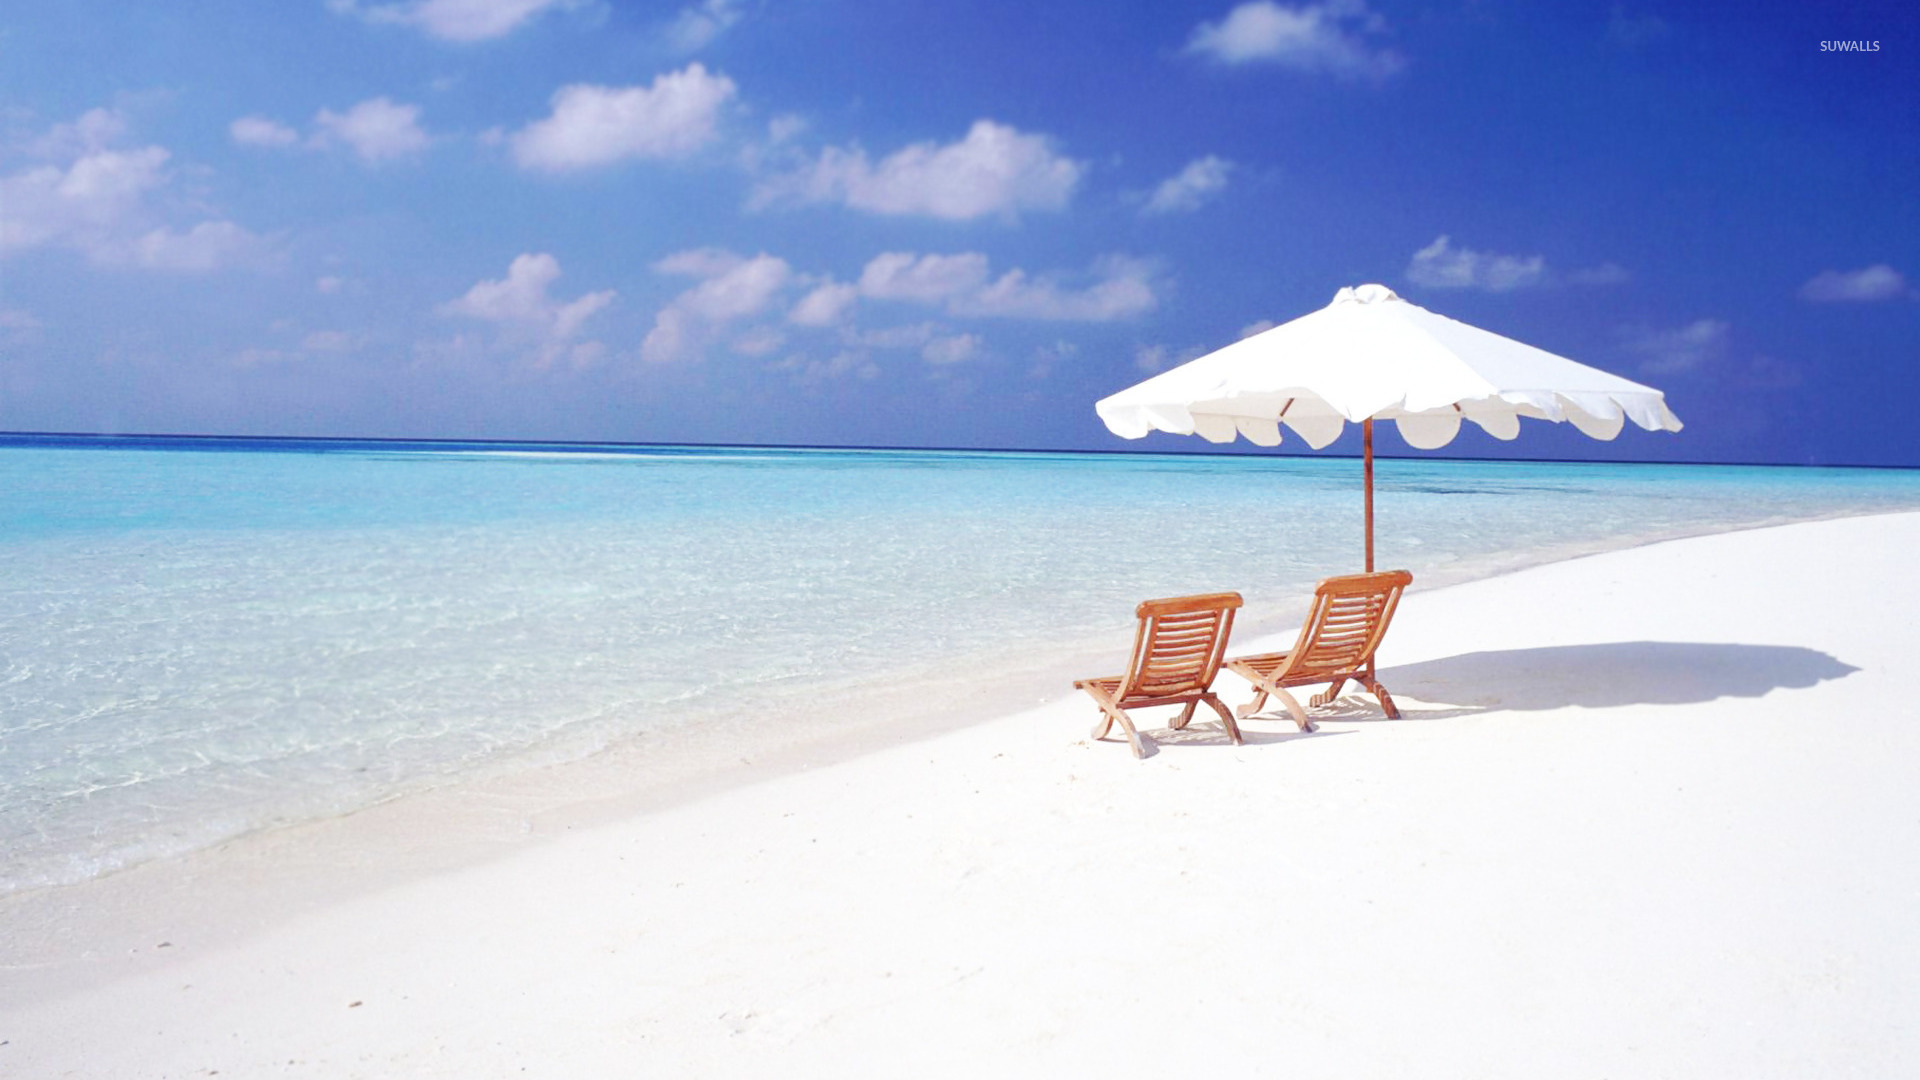 Maldives beach wallpaper wallpapersafari for Beach wallpaper 1920x1080